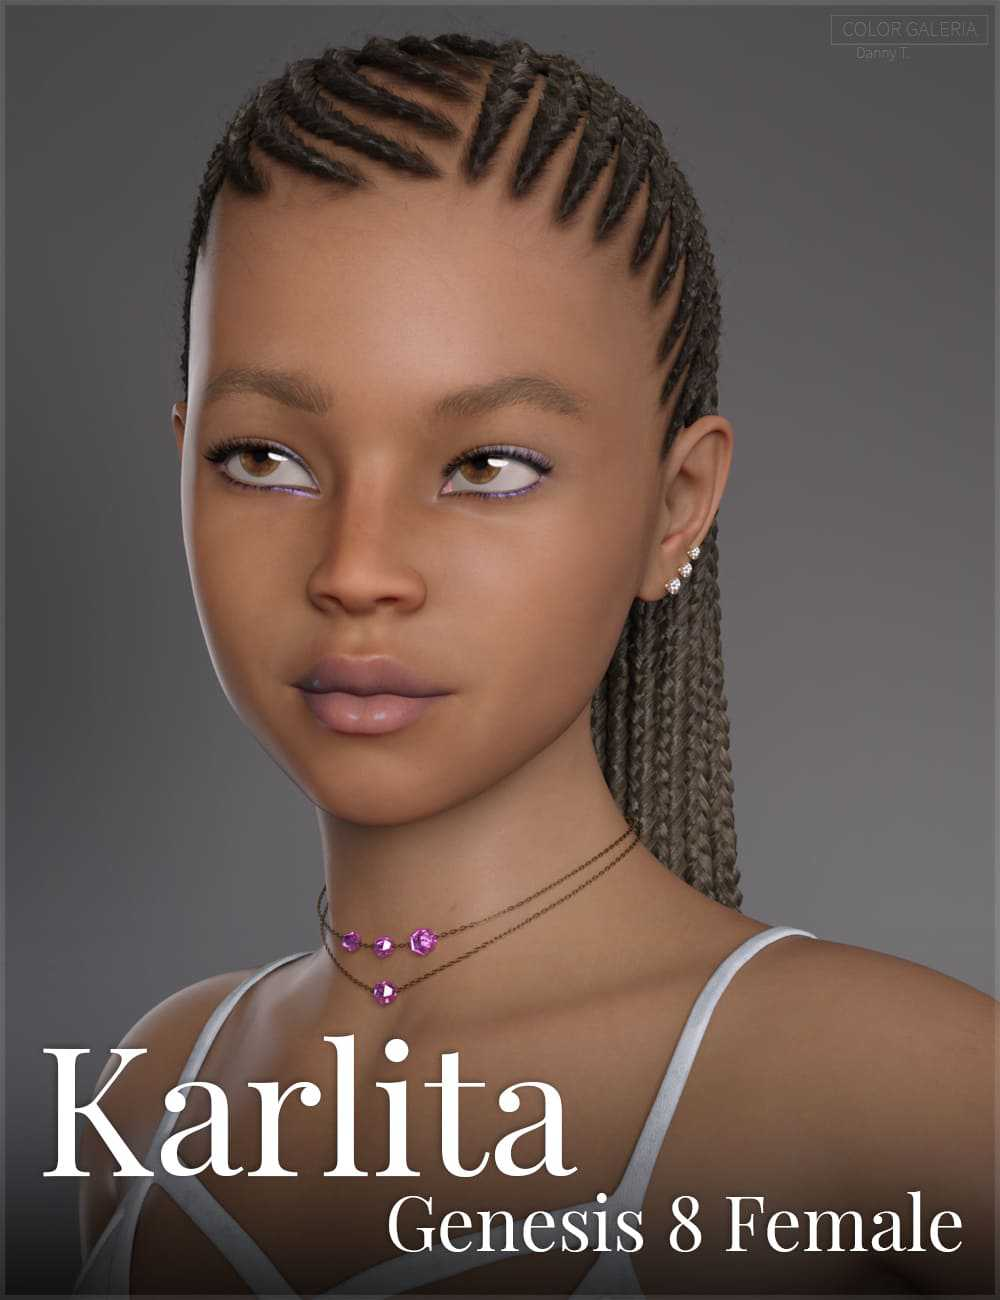 Karlita for Genesis 8 Female – Teen